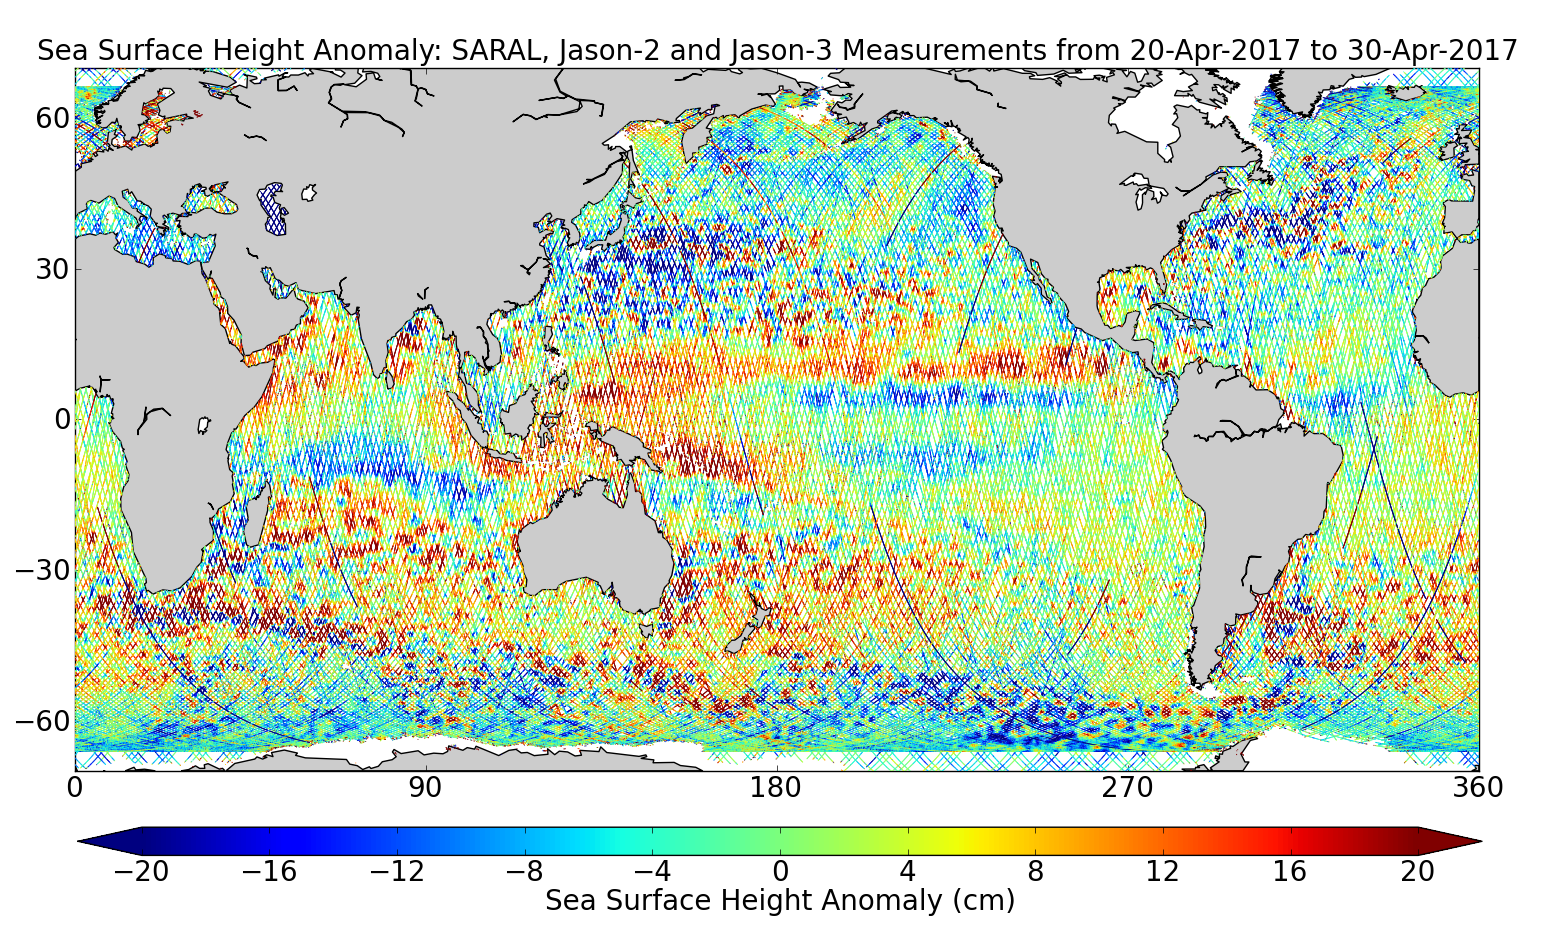 Sea Surface Height Anomaly: SARAL, Jason-2 and Jason-3 Measurements from 20-Apr-2017 to 30-Apr-2017